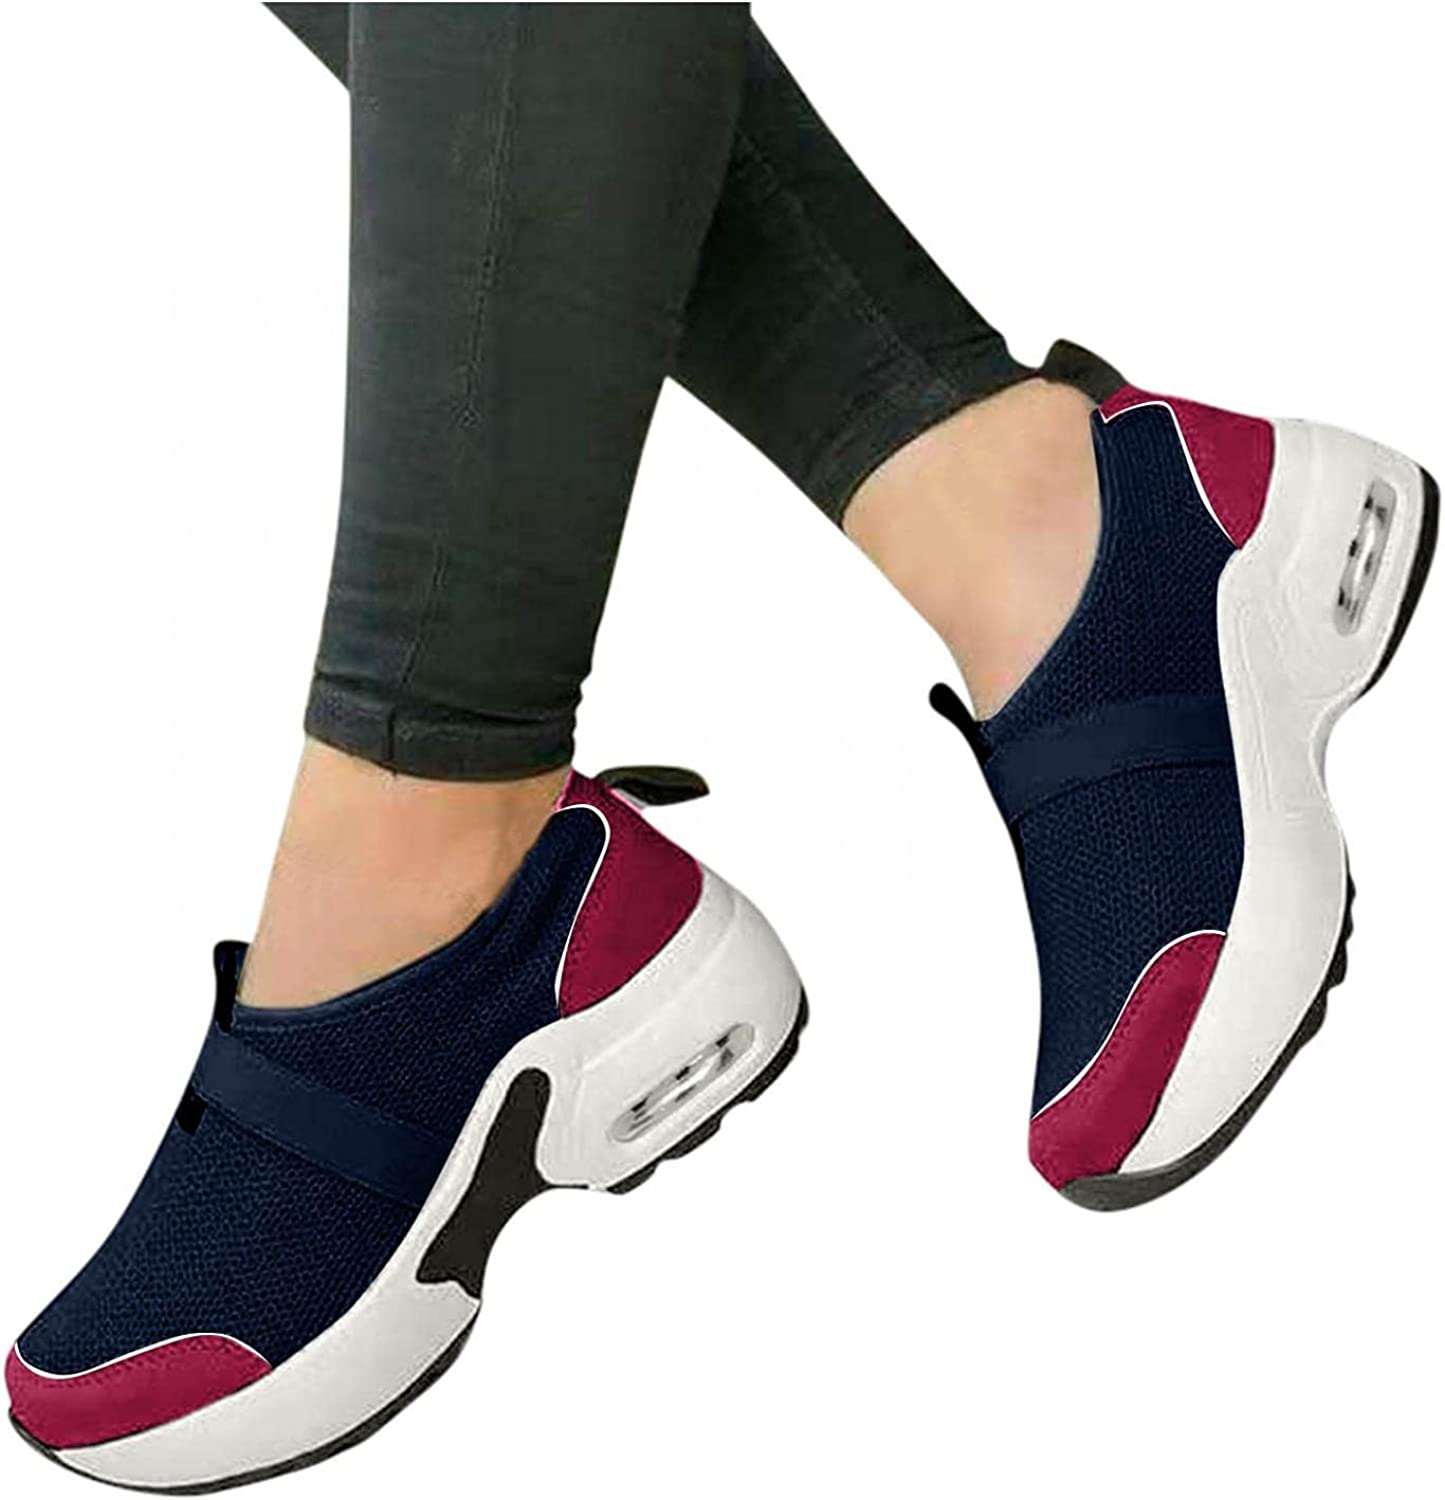 Hbeylia Platform Wedge Walking Running Shoes For Women Comfortable Slip On Fashion Sneakers Fashion Casual Chunky Bottom High Heels Athletic Work Nursing Shoes For Ladies Girls